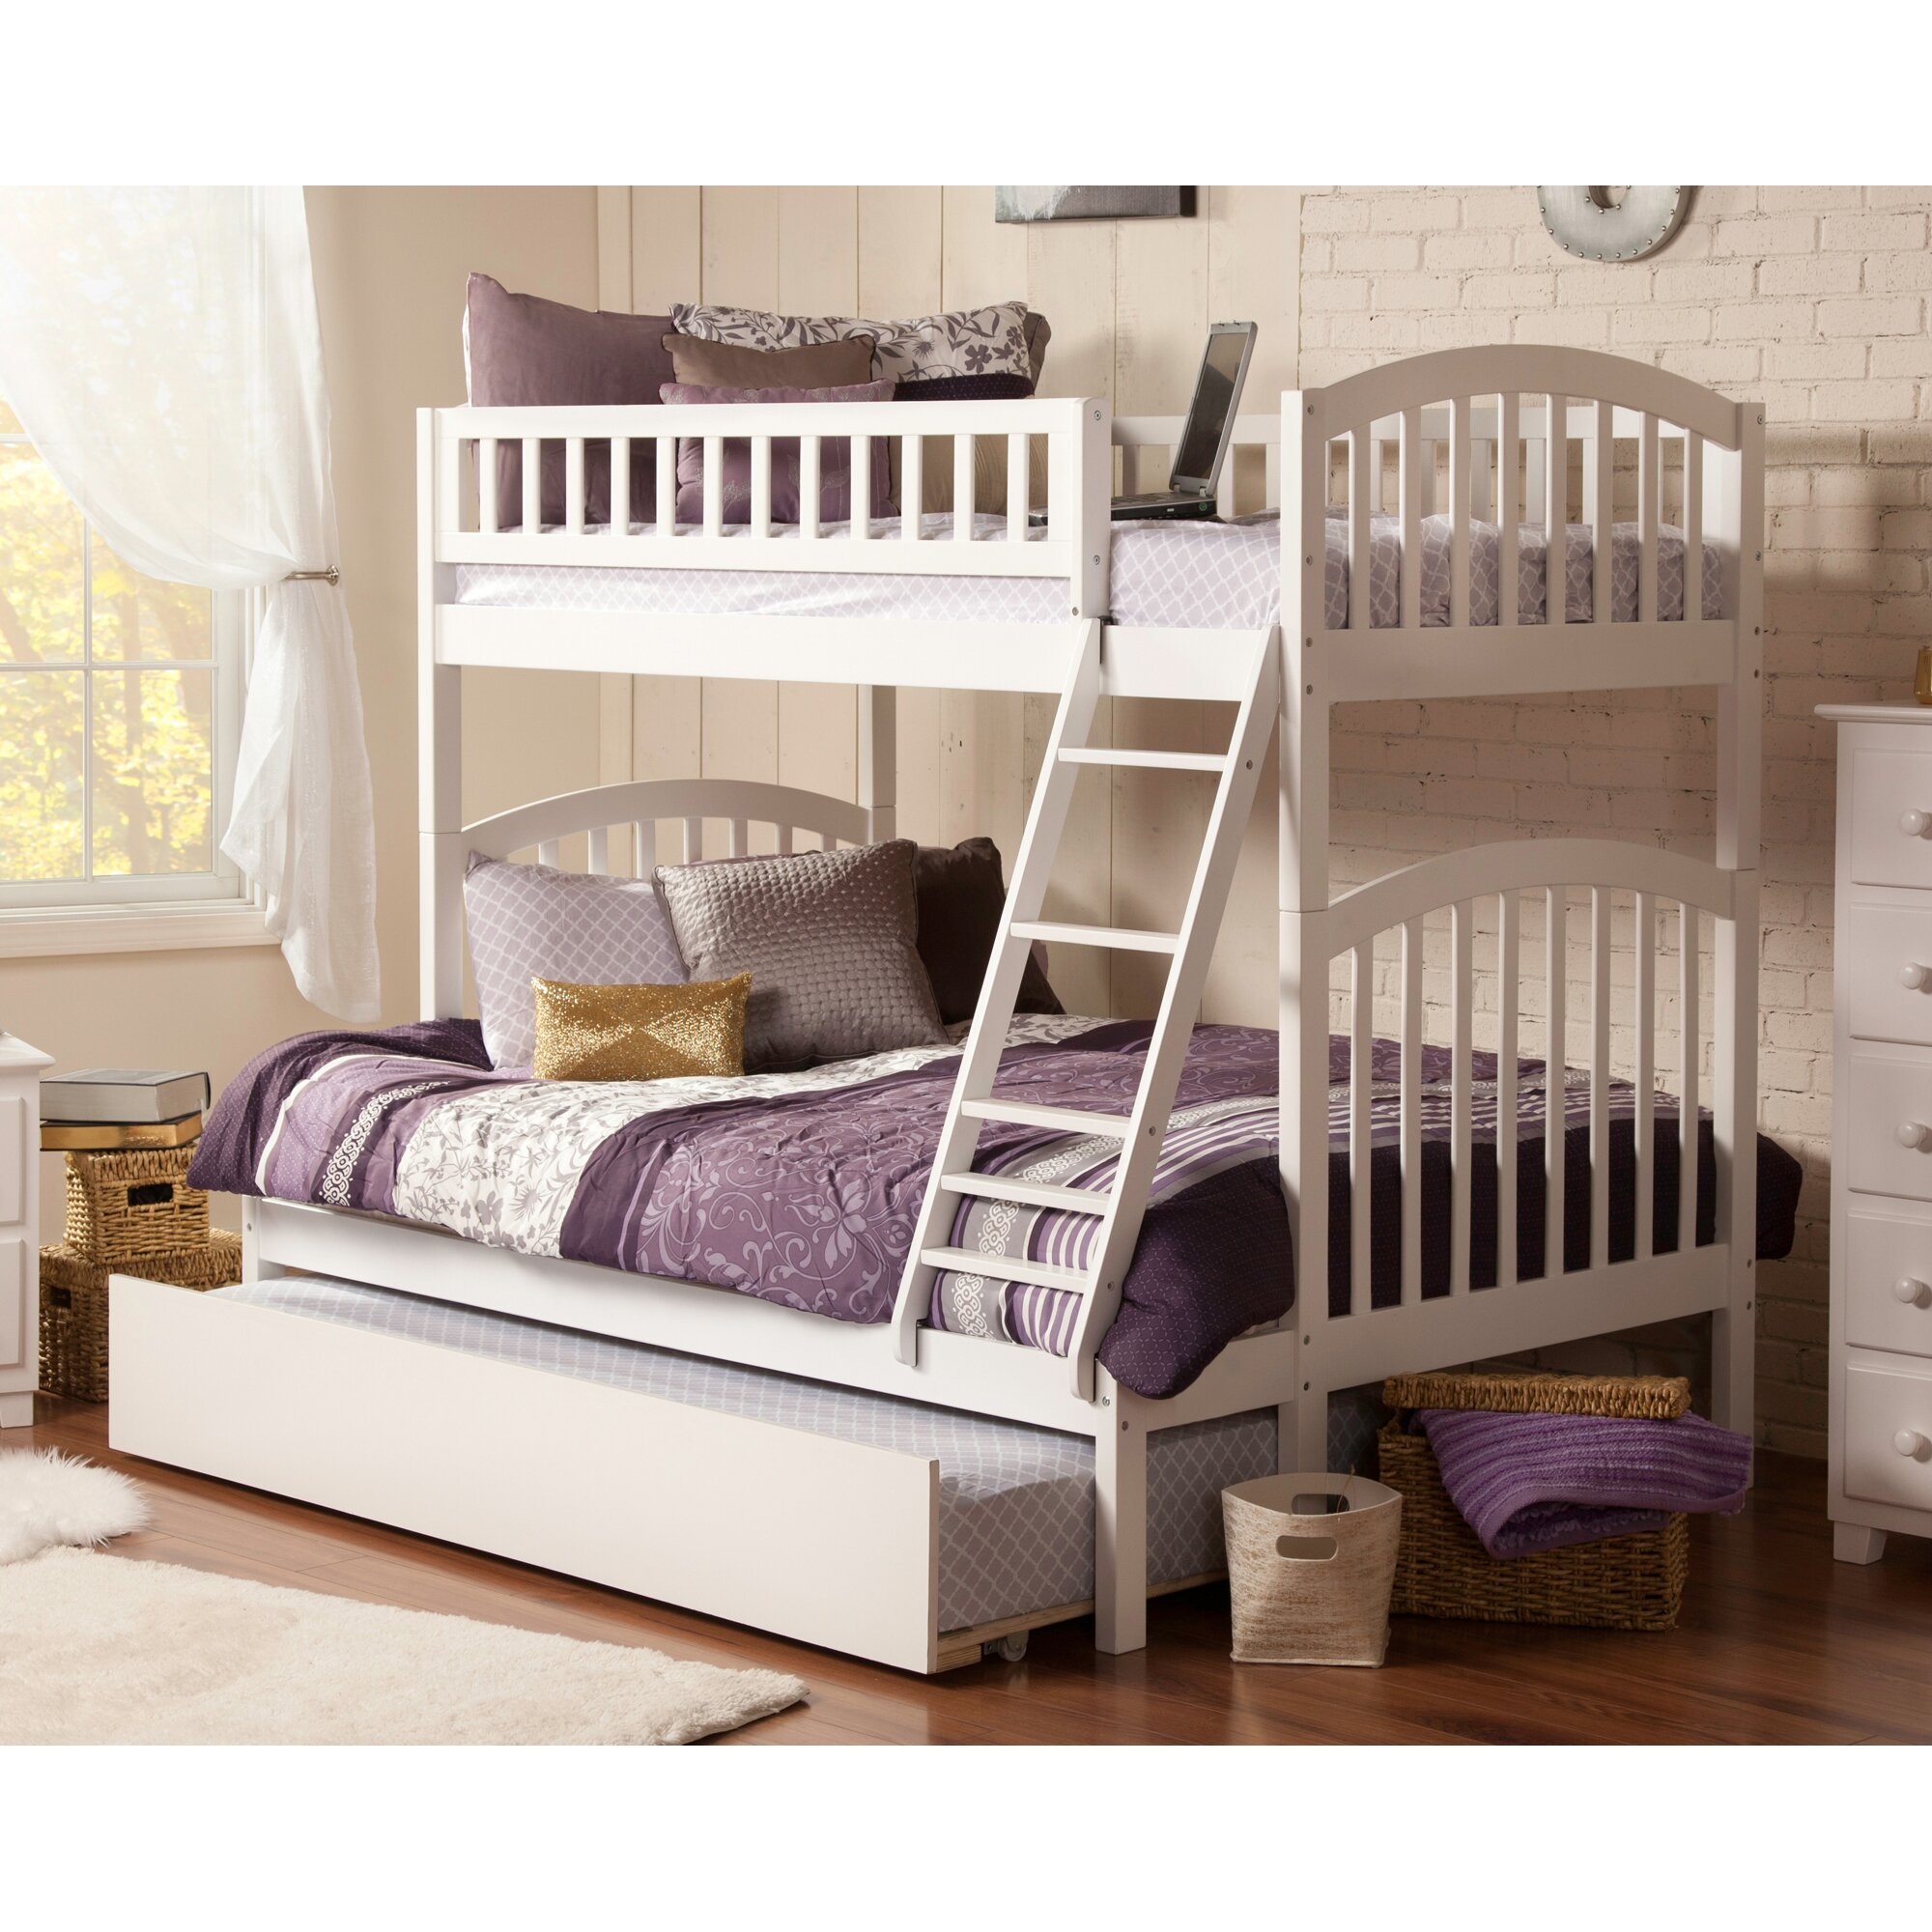 Best 25 Twin Full Bunk Bed Ideas On Pinterest: Atlantic Furniture Richland Twin Over Full Bunk Bed